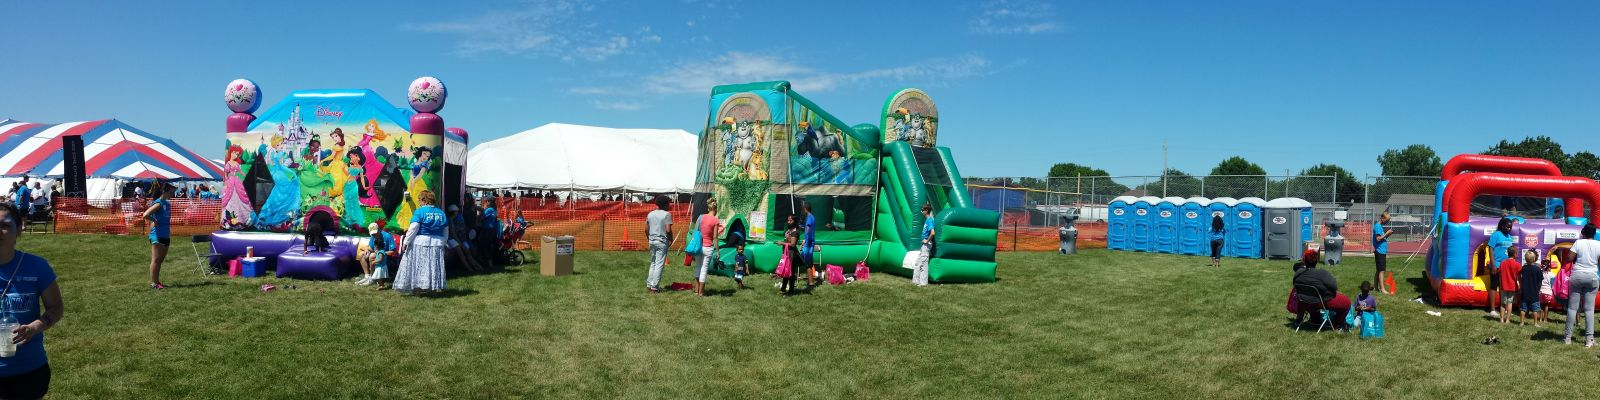 Zoo Combo with other Inflatables at large fundraiser